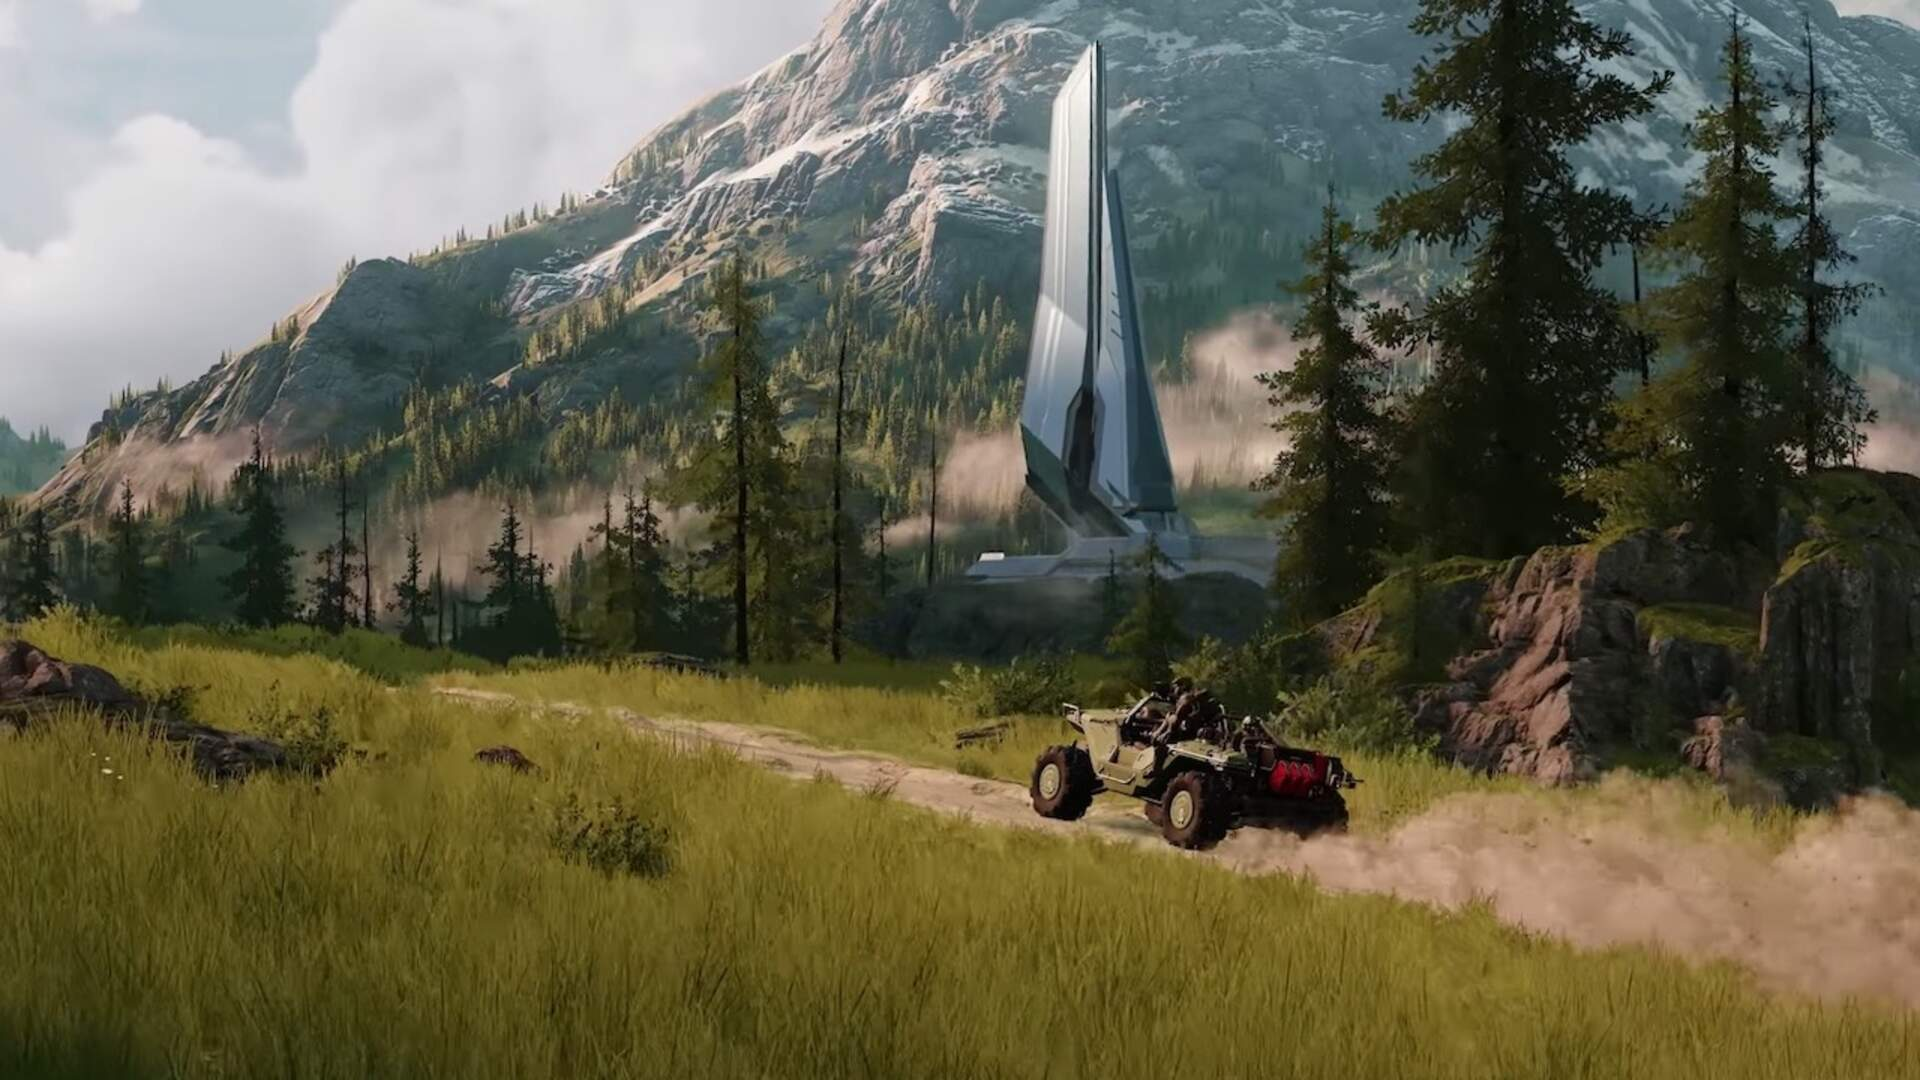 Halo Infinite's Showcase This Month Will Focus on Campaign, 343 Confirms